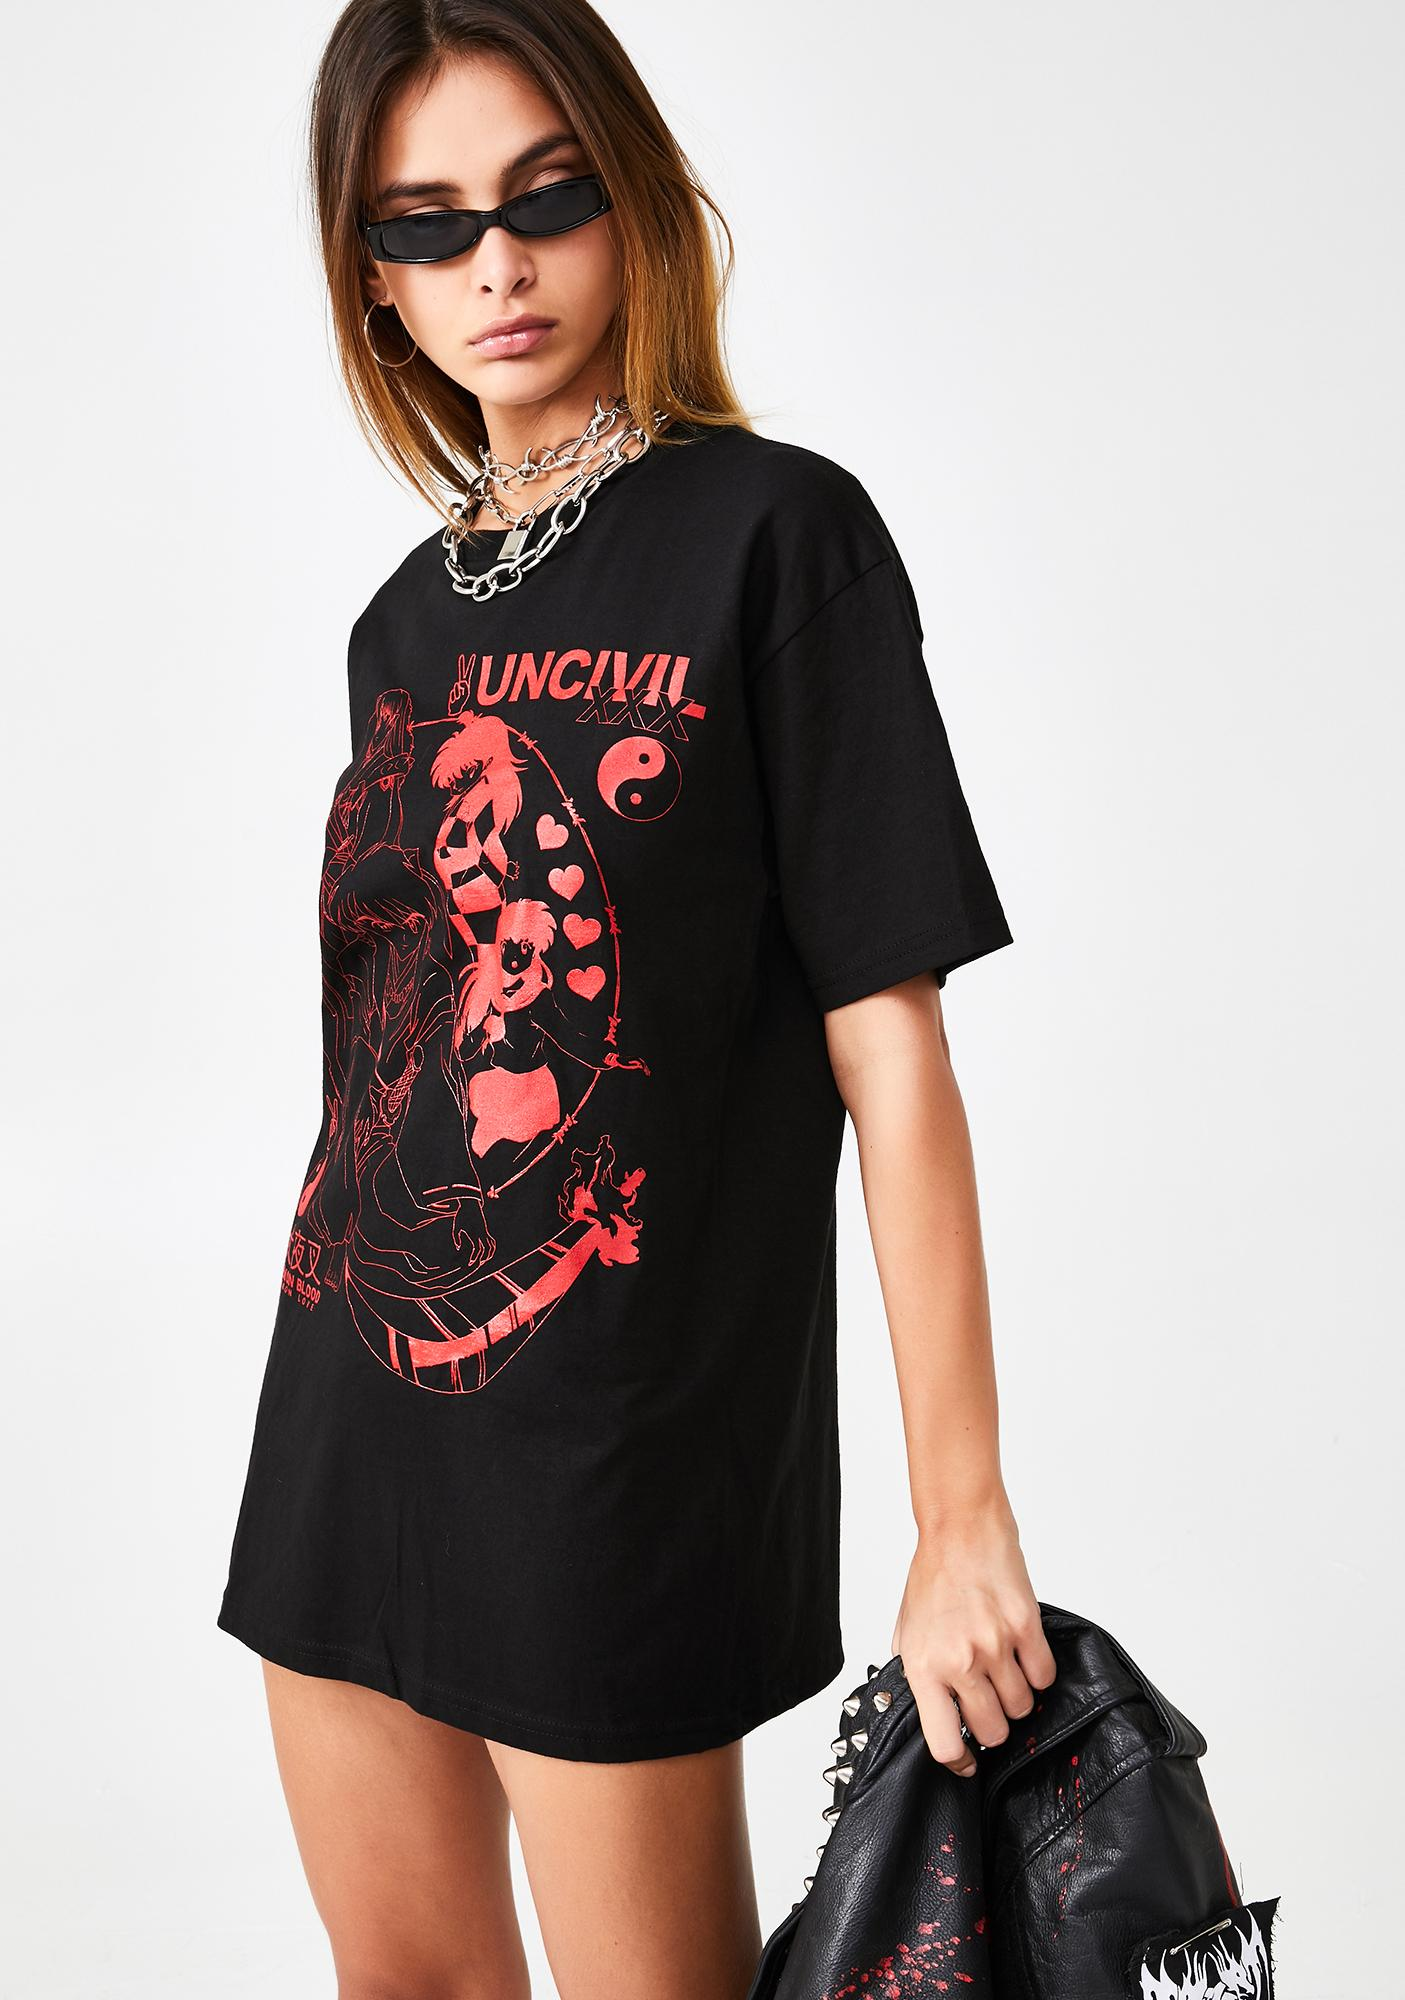 UNCIVIL XXX Demon Blood Demon Love Graphic Tee